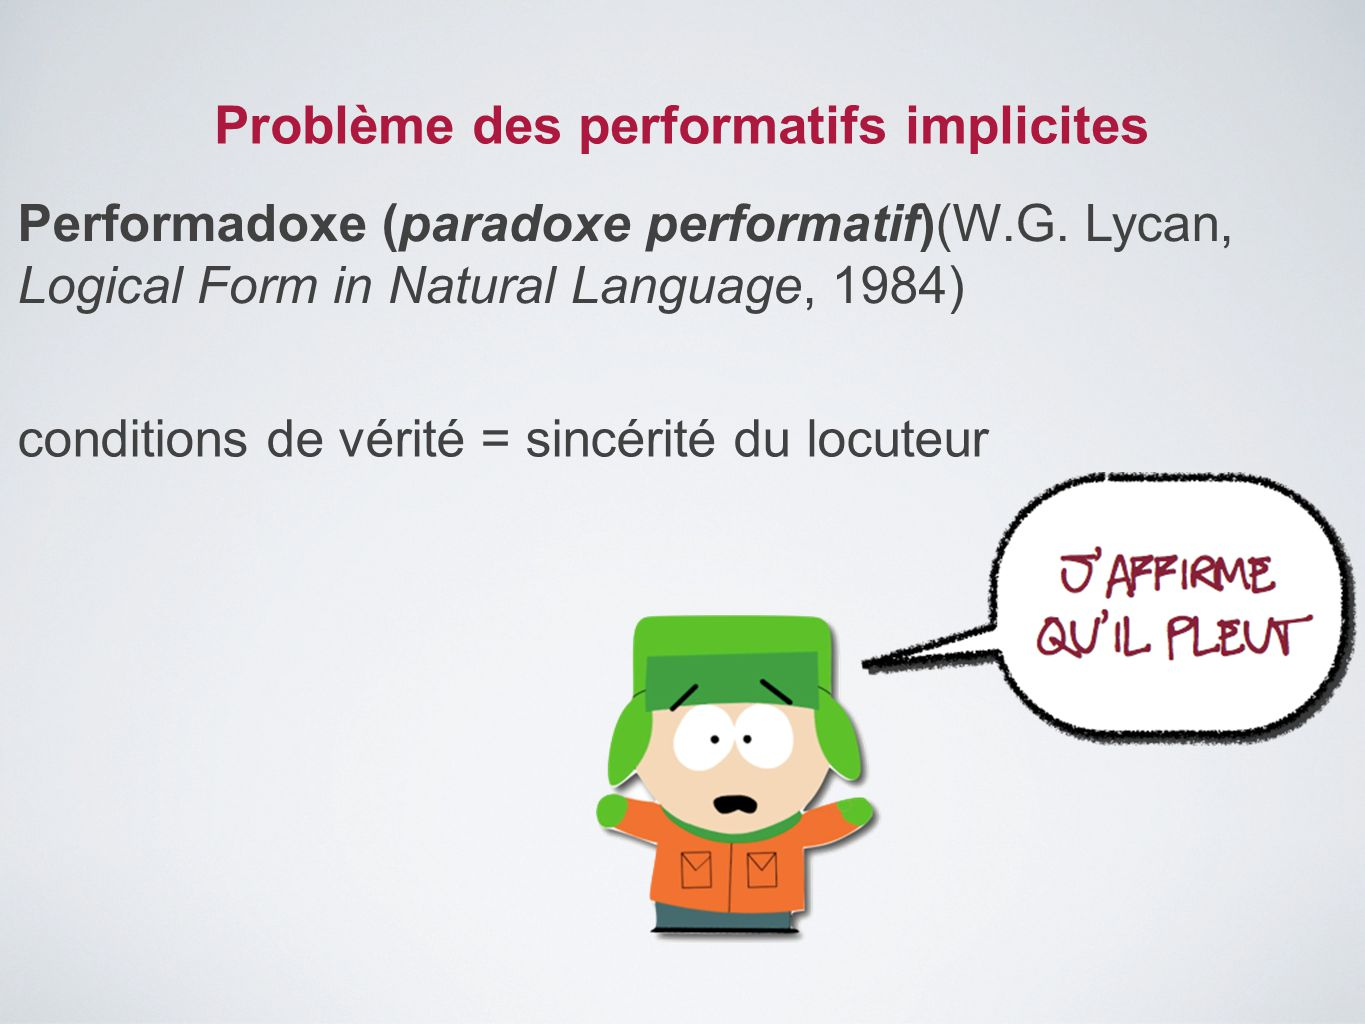 Problème des performatifs implicites Performadoxe (paradoxe performatif)(W.G. Lycan, Logical Form in Natural Language, 1984) conditions de vérité = si